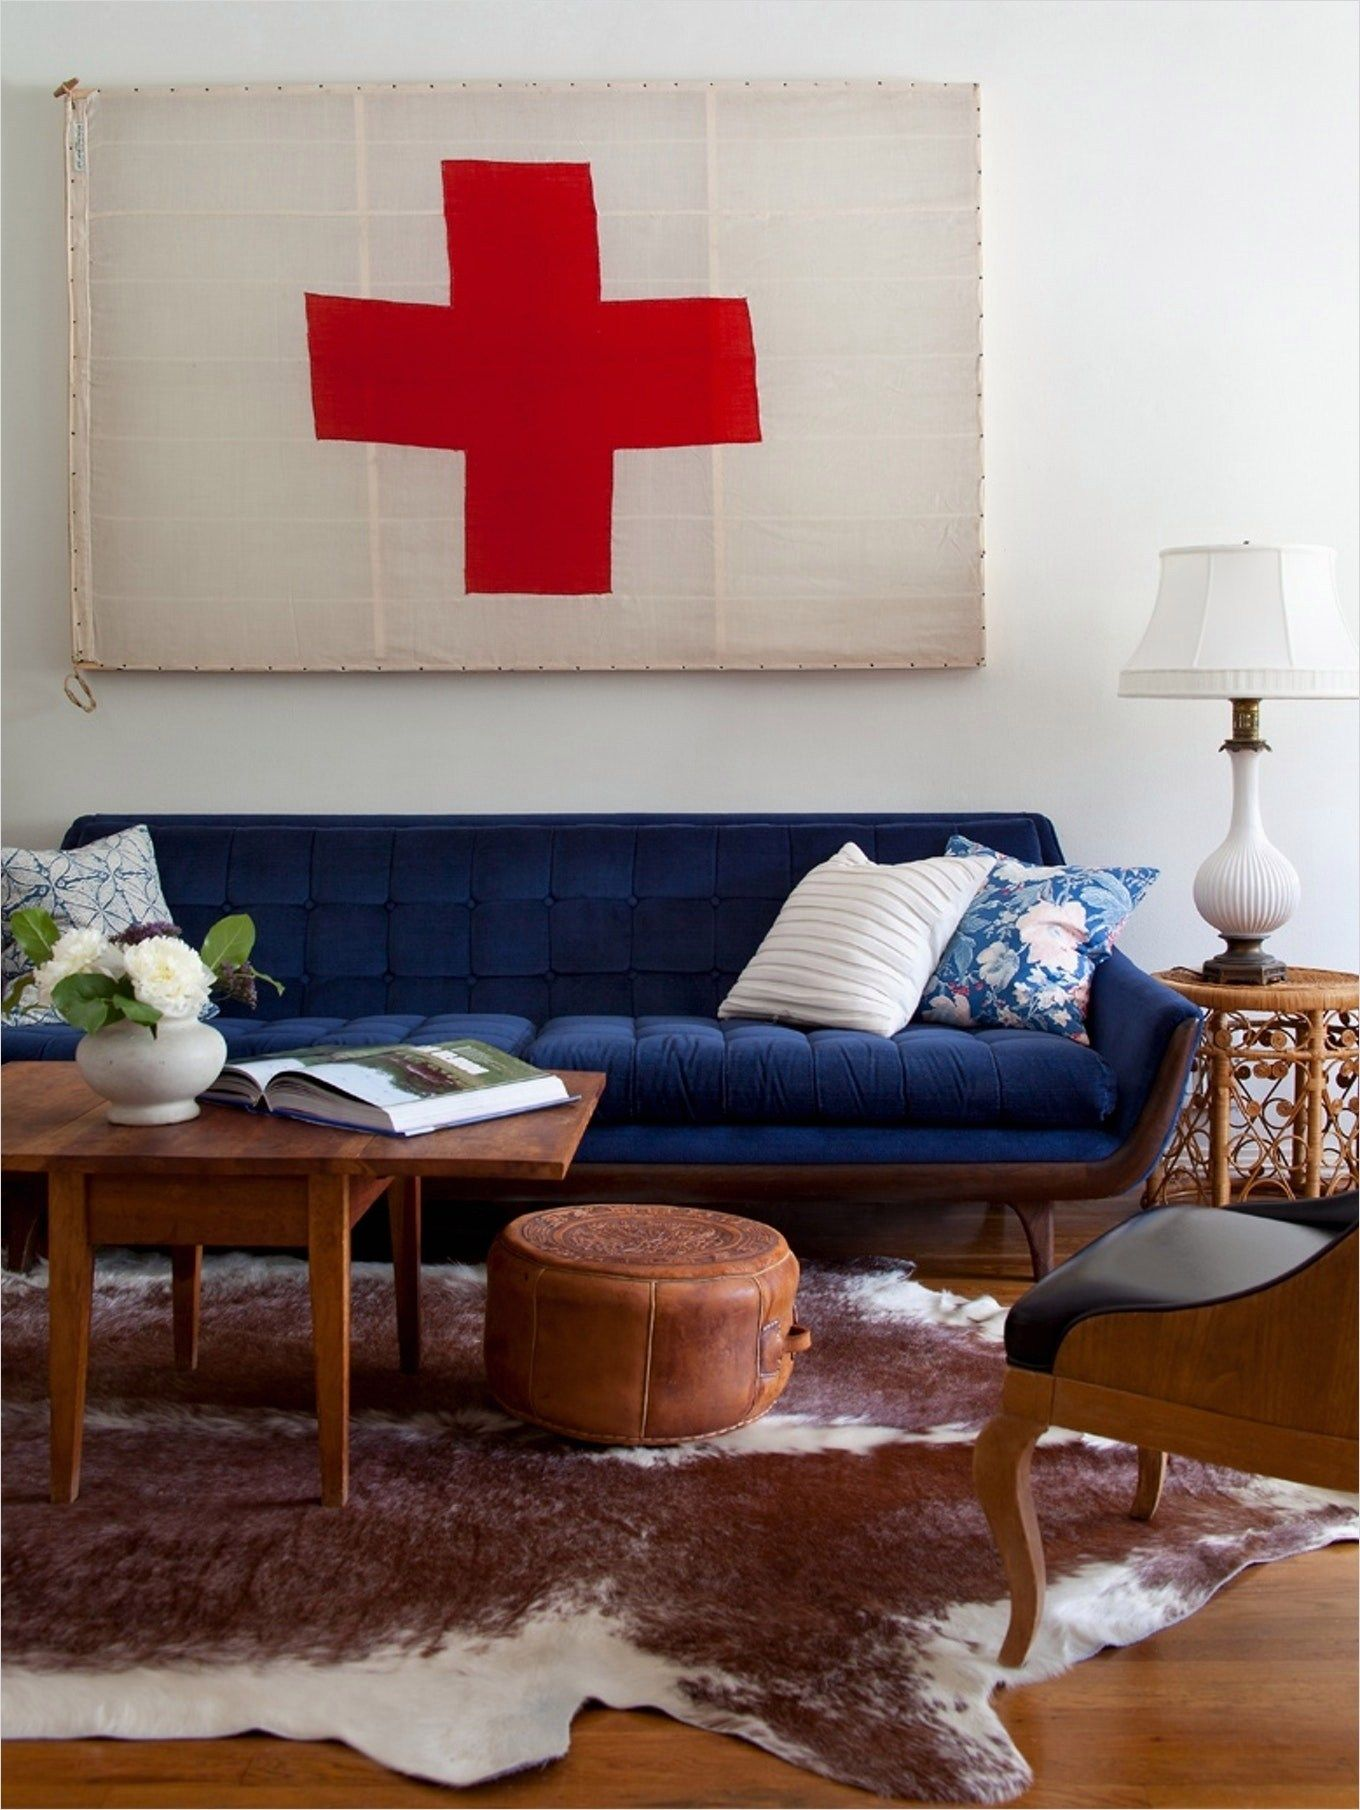 41 Amazing Navy Blue And White Living Room Ideas Decorewarding Blue And White Living Room White Living Room Navy Blue Furniture Living Room